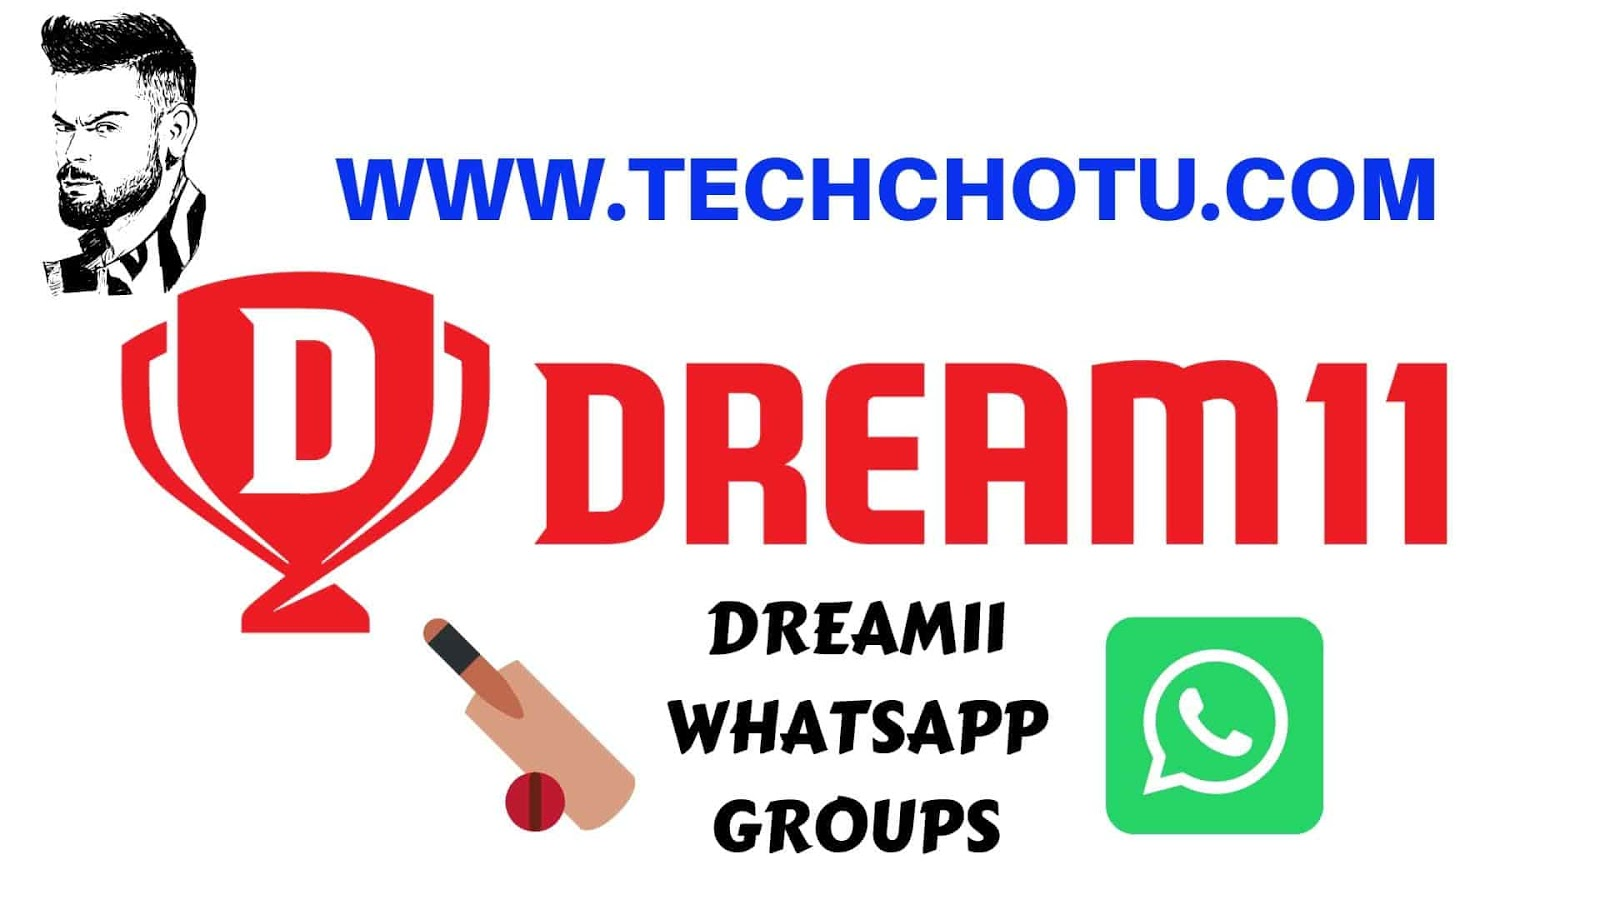 Dream11 Whatsapp Group Links - Techchotu-Whatsapp Group -6950